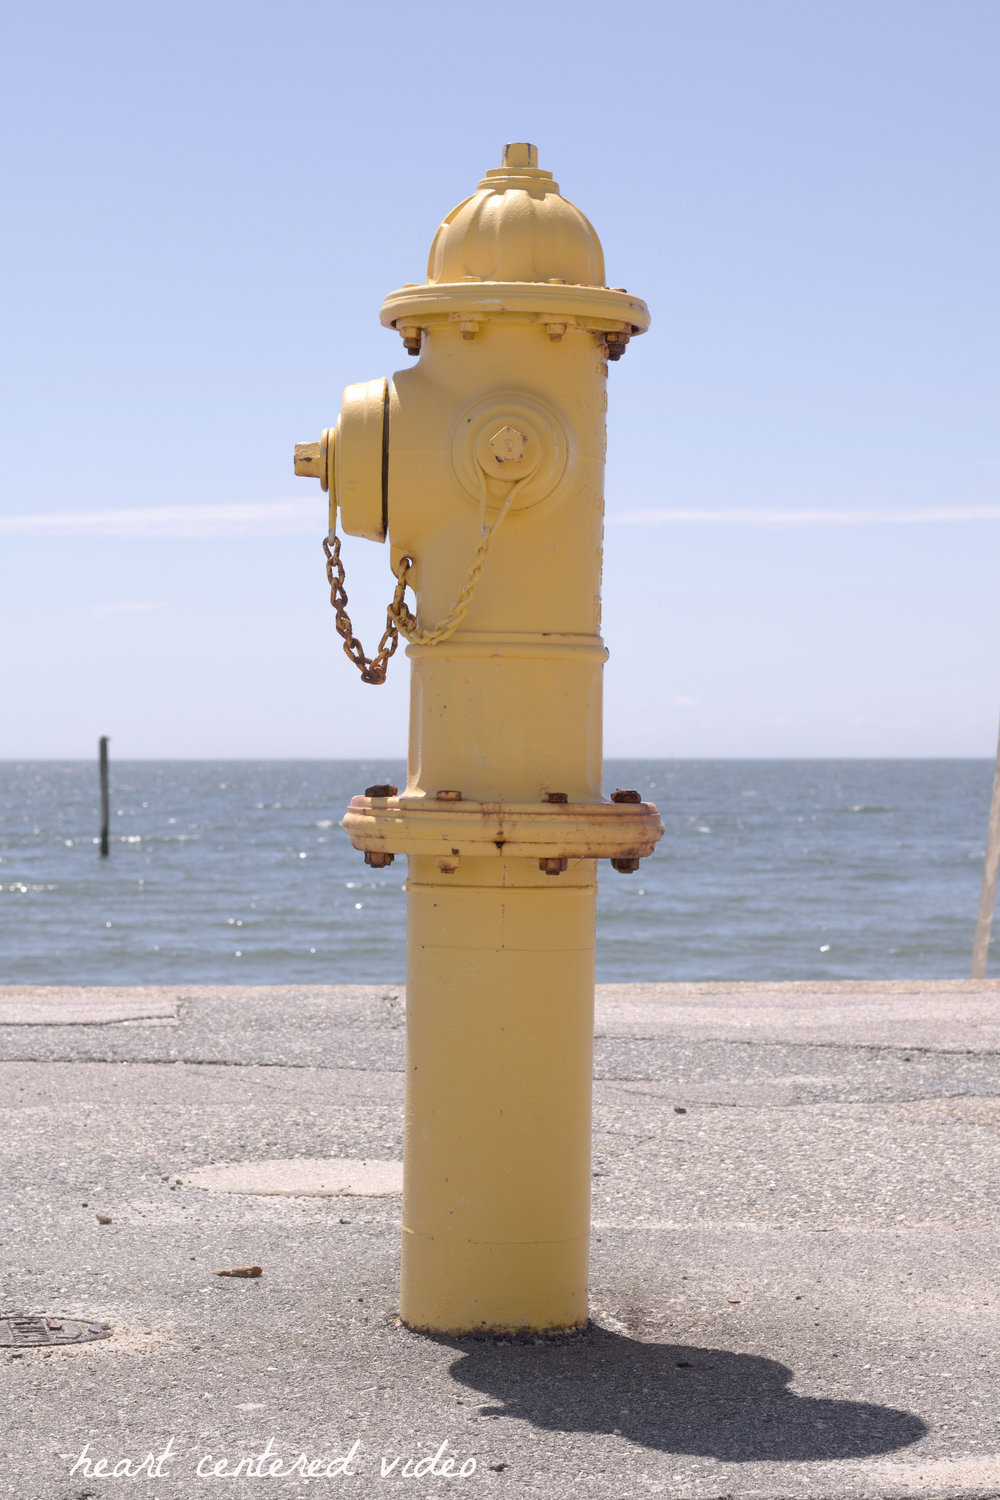 yellow fire hydrant at the beach